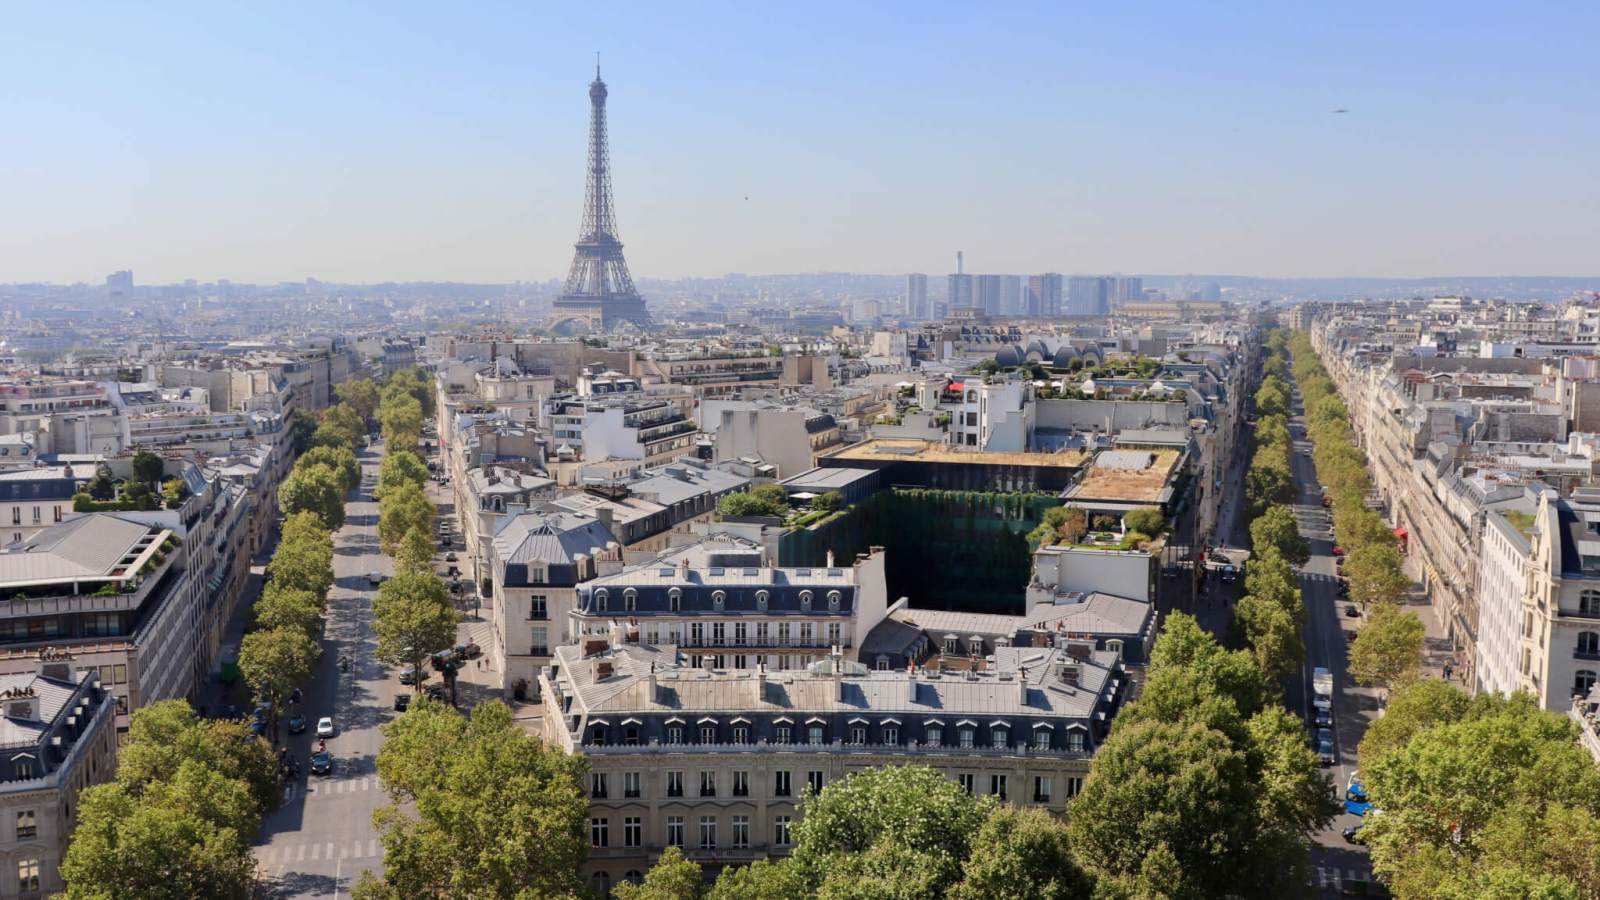 Paris Skyline and Eiffel Tower as seen from the Arc de Triomphe